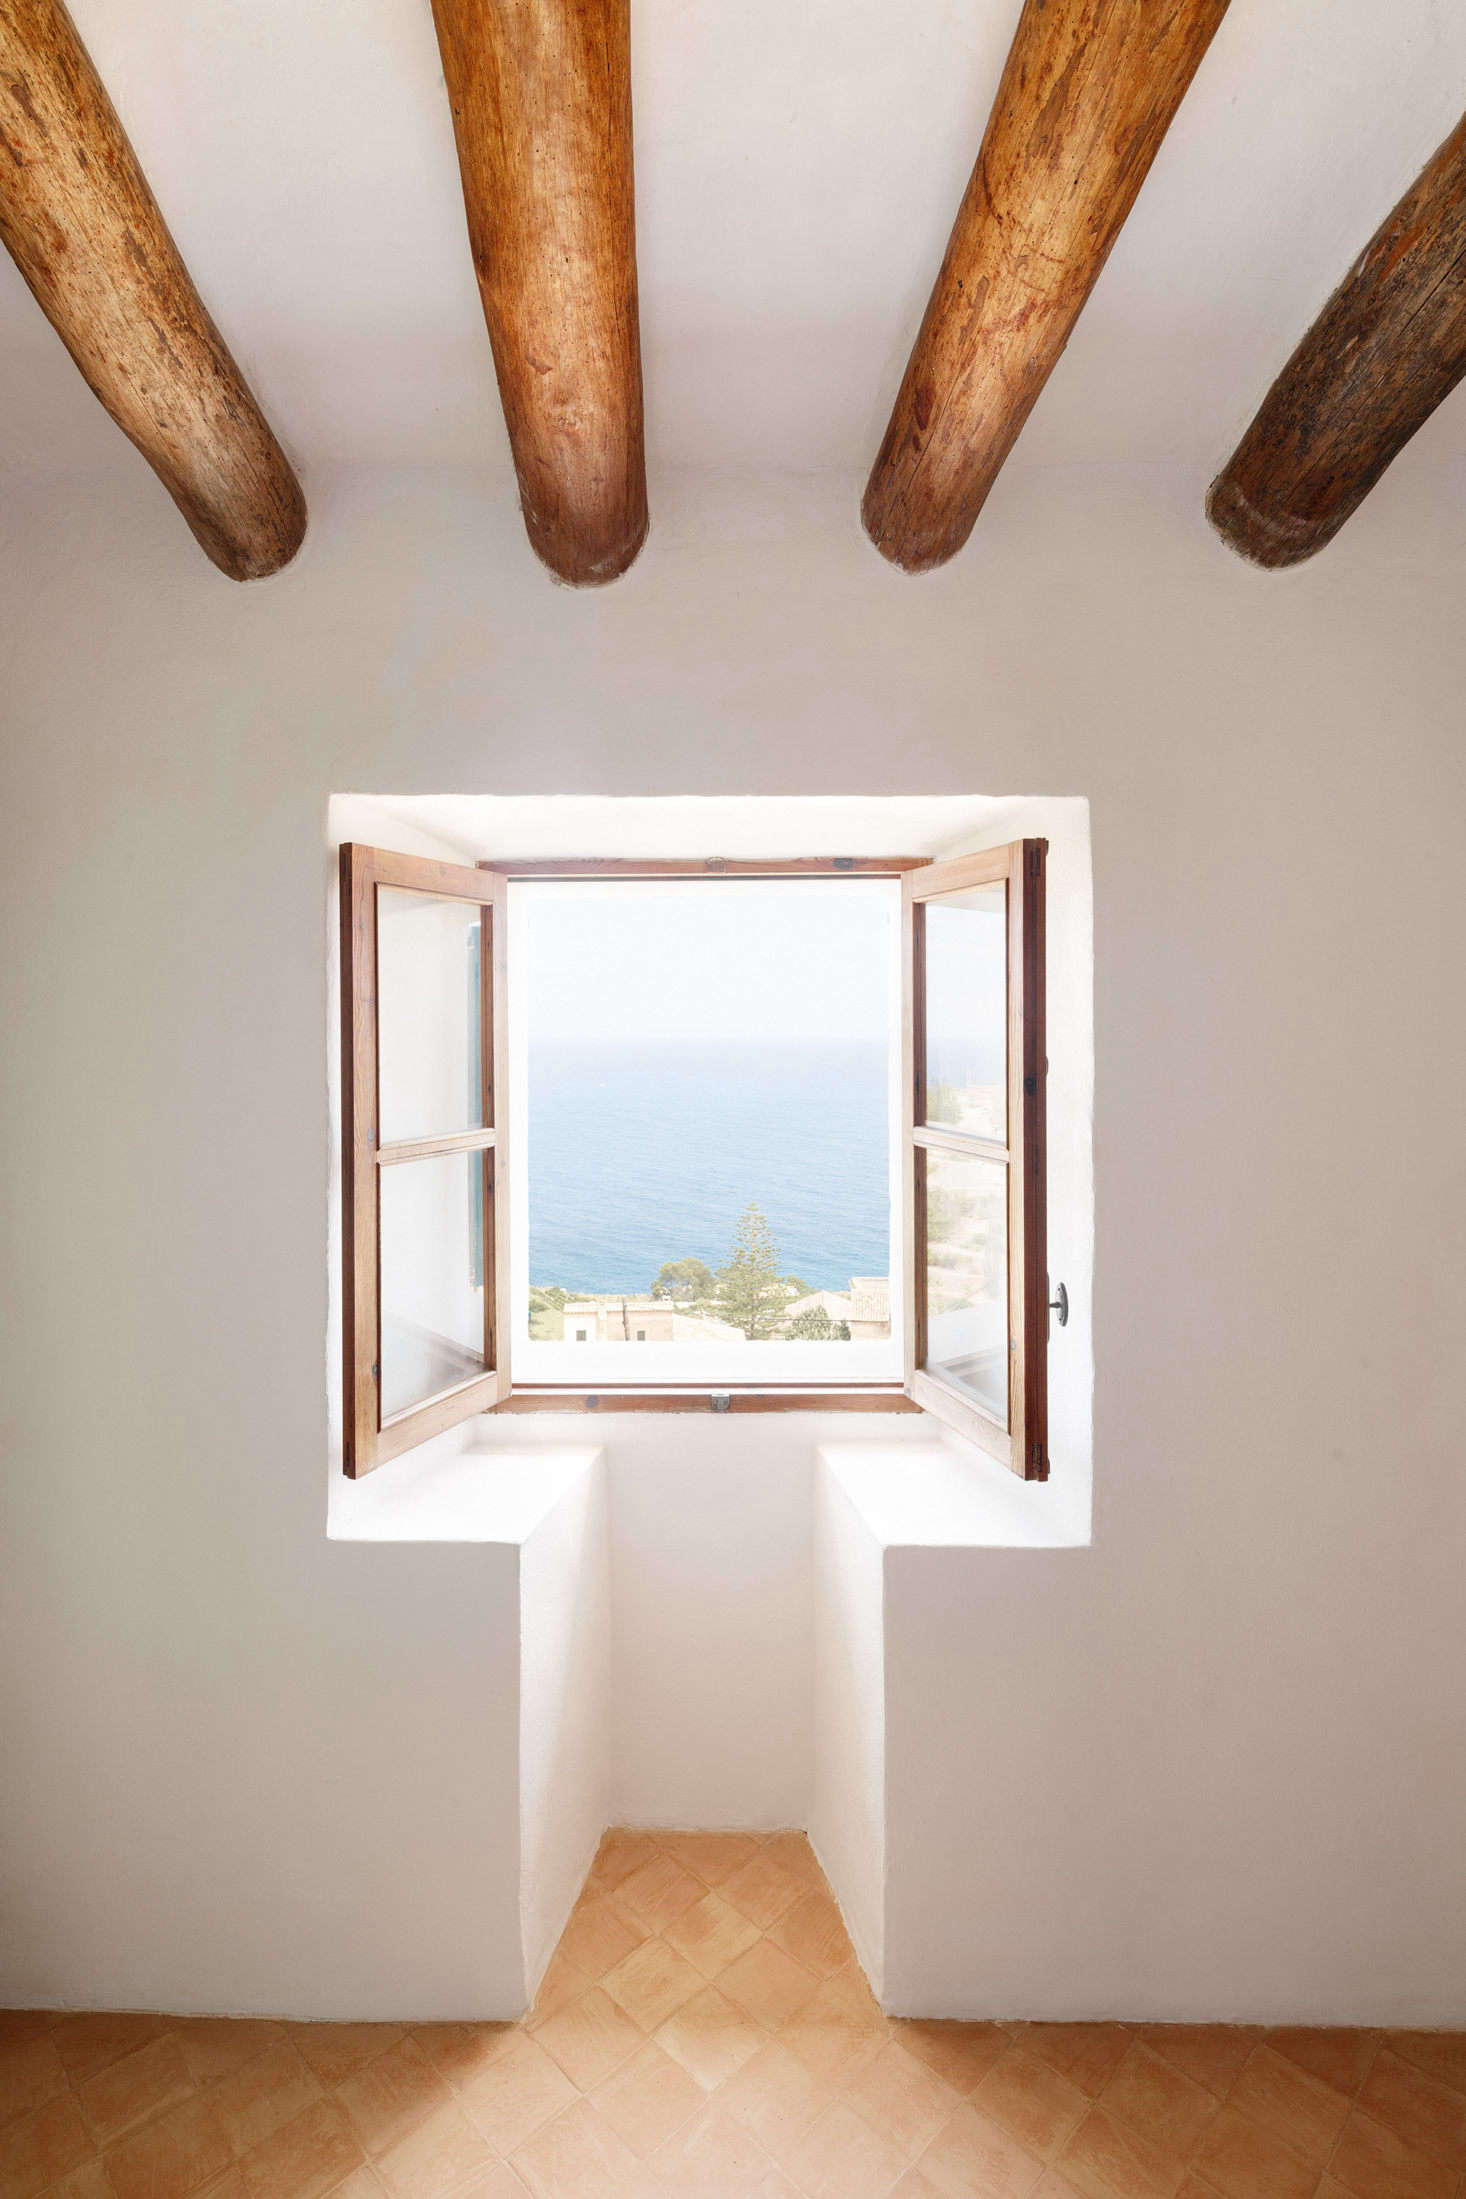 The windows in the front of the house have unobstructed views of the Balearic Sea (and are often left open to let in the ocean air). The architects also installed windows in the back of the house, for catching cross-breezes.